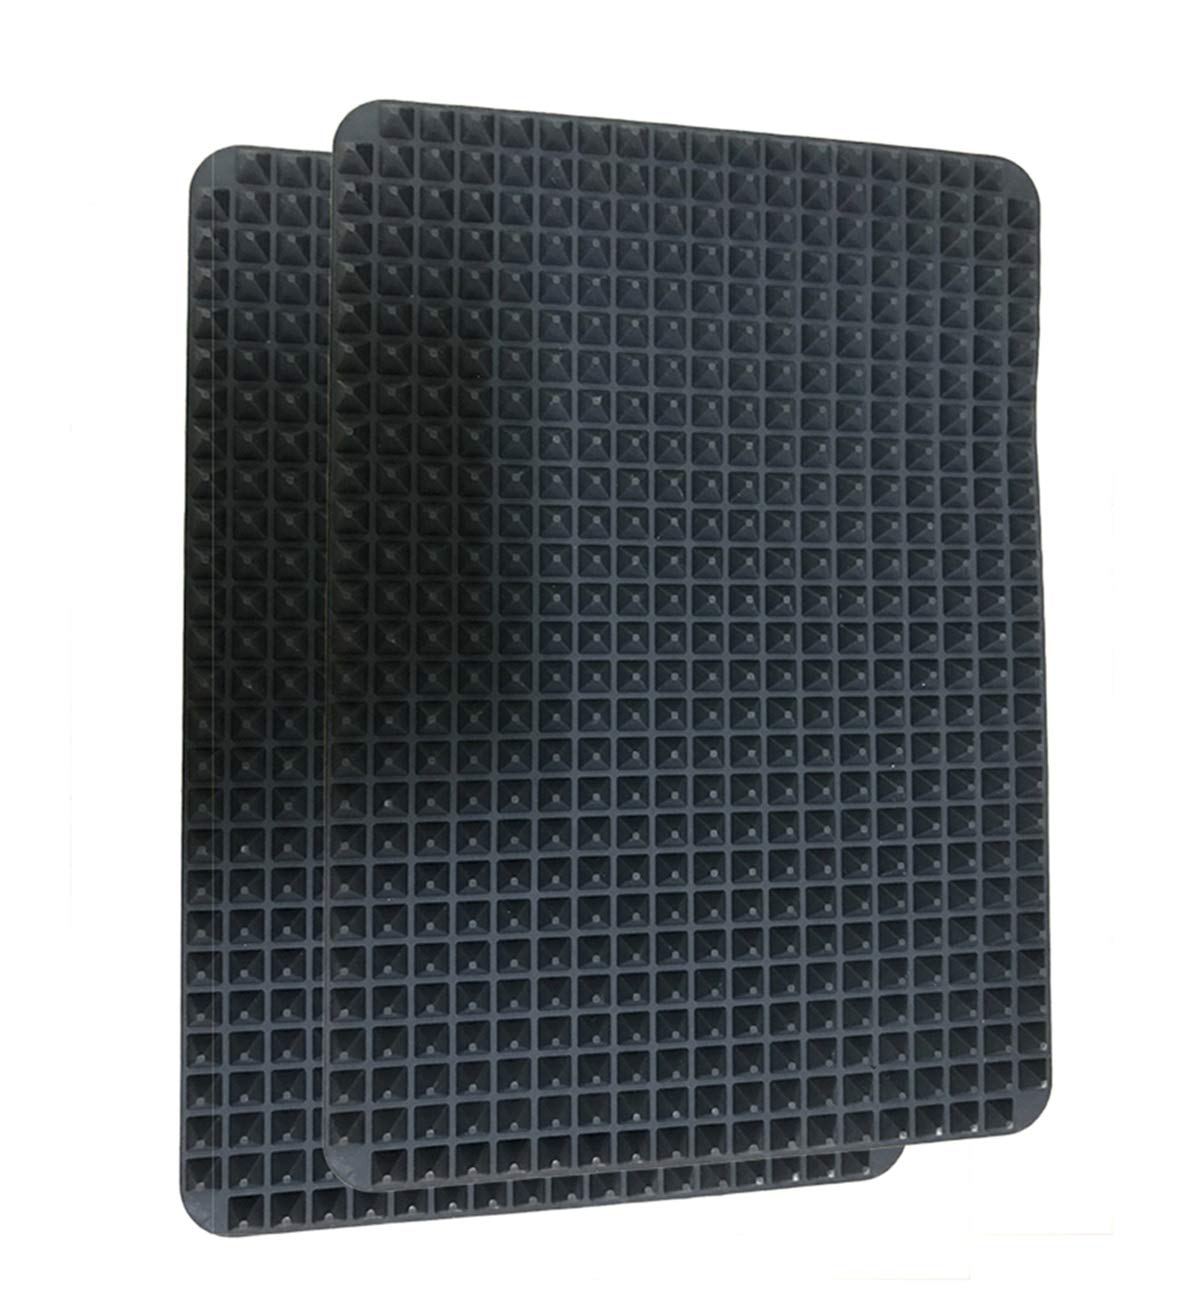 Non-stick Silicone Baking Mat,Pyramid Healthy Cooking Oven Mat Fat-reducing Grill Mats BBQ 15.1 x 10.6Inch (2Pack) (Black-2 pack)